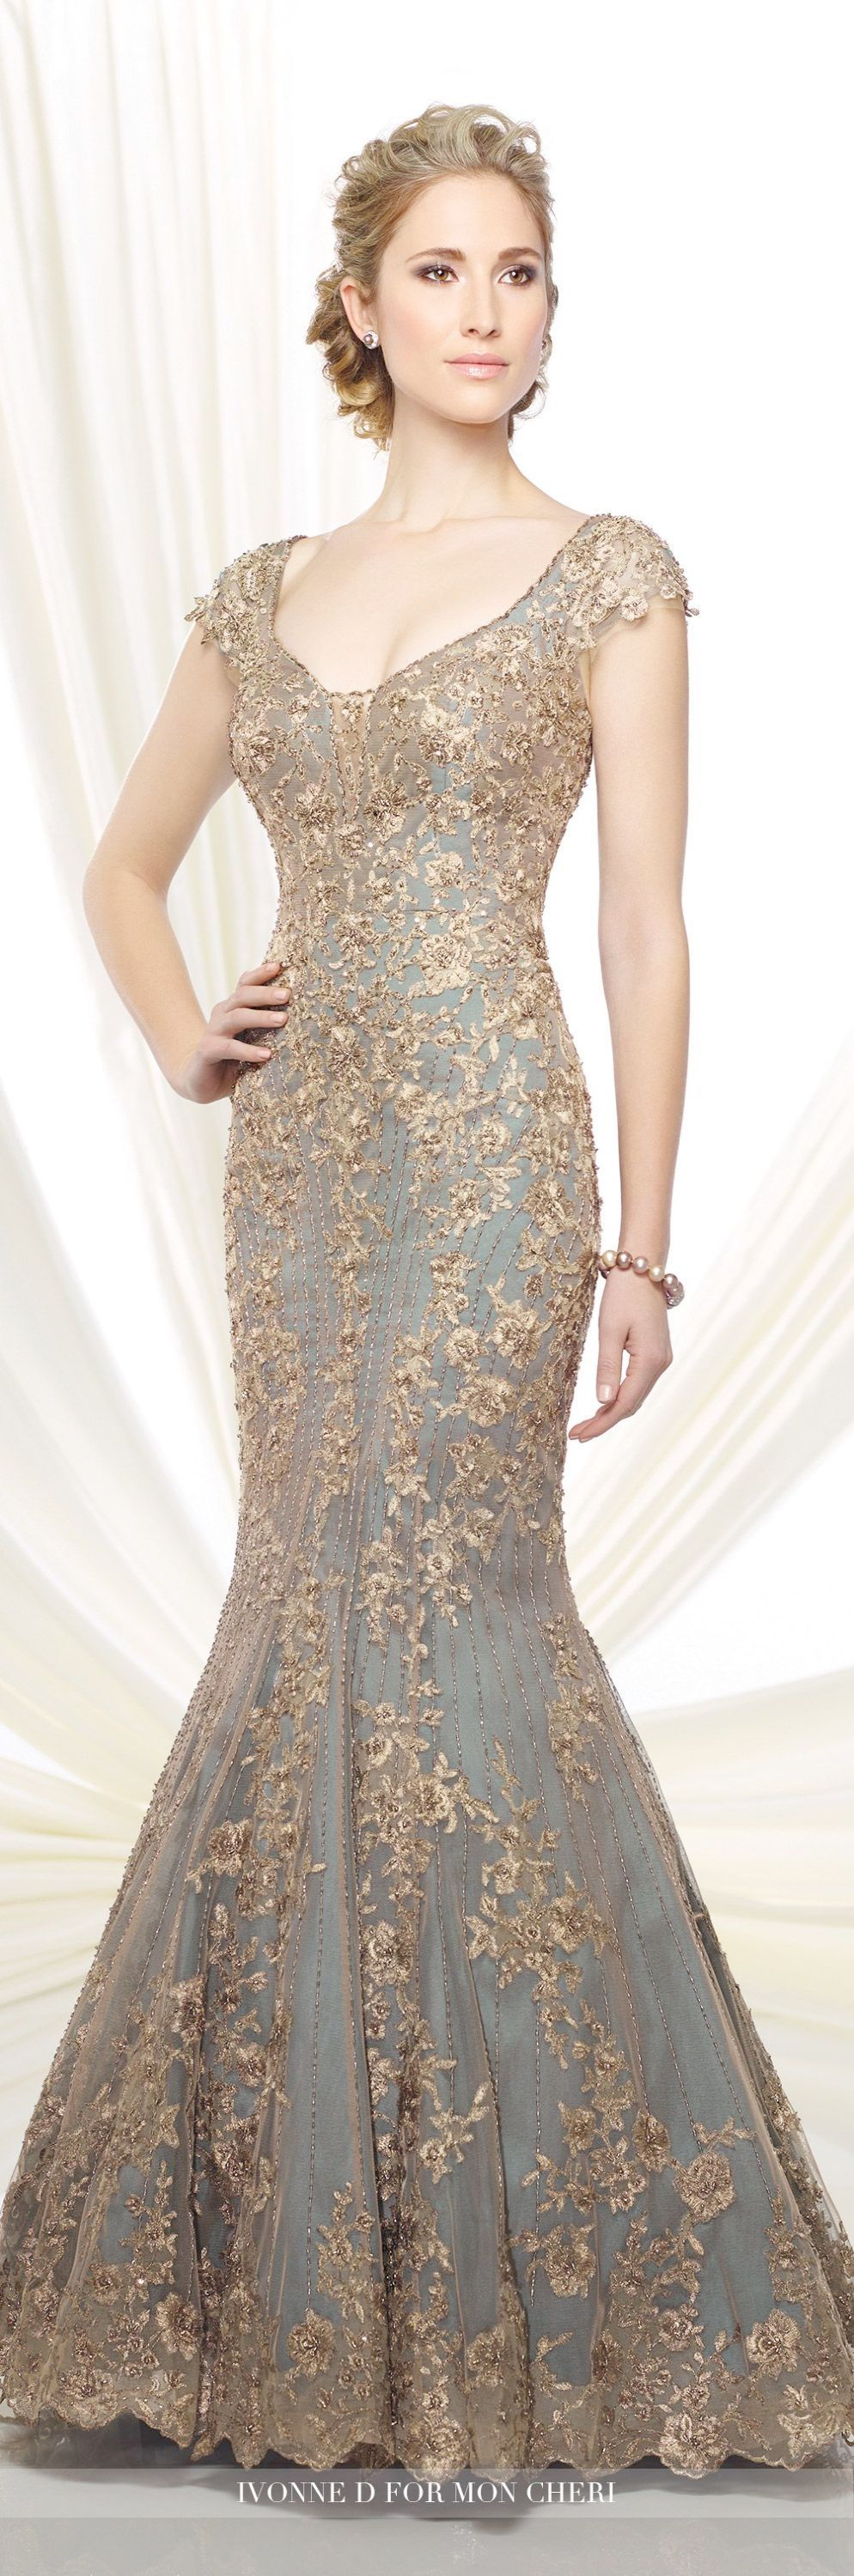 Evening Gown For Petite Formal Gown Consignment | Evening Dresses ...